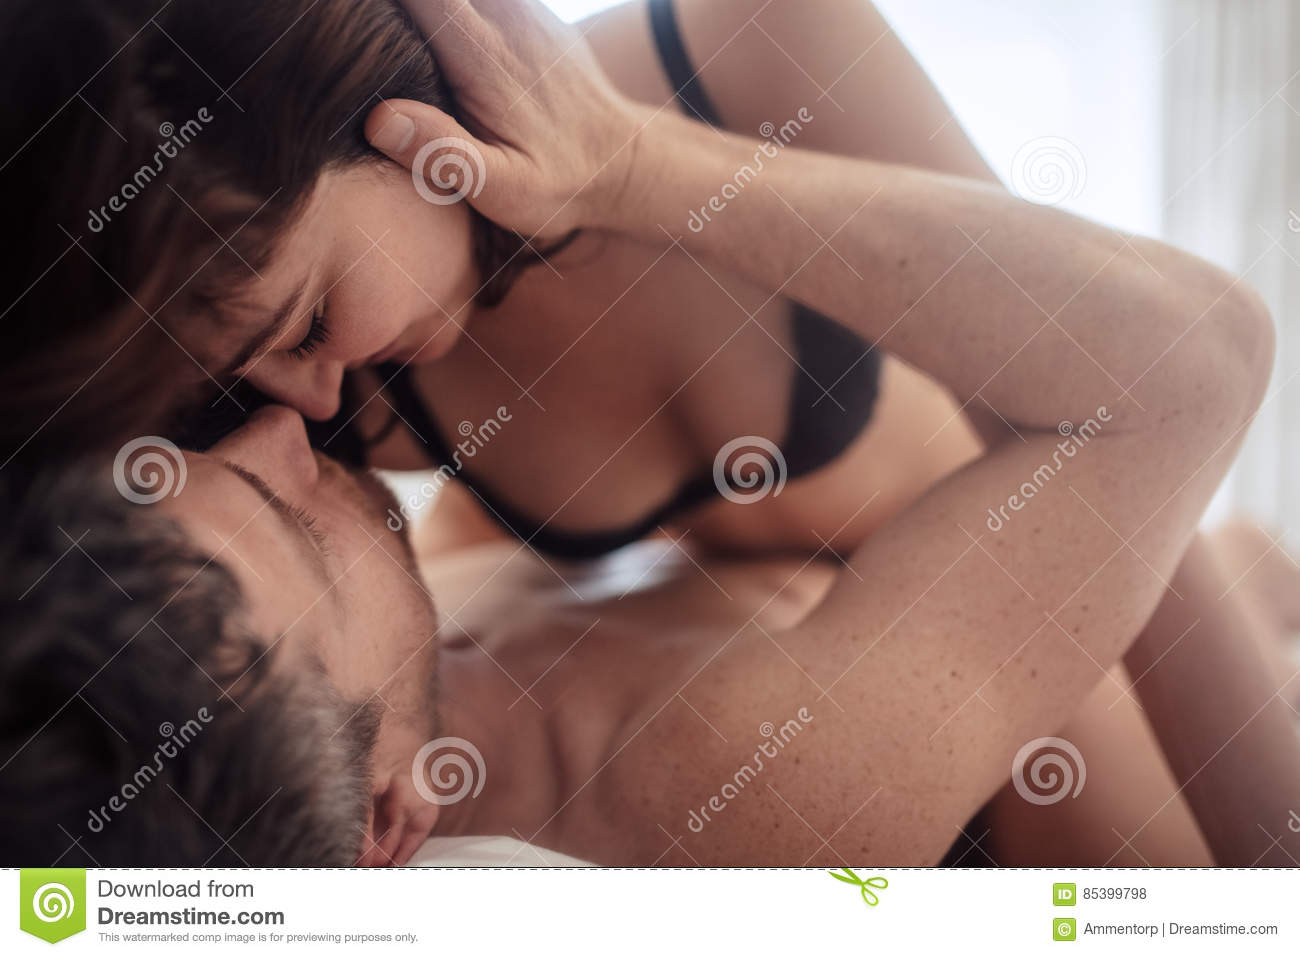 Extended orgasm by kissing